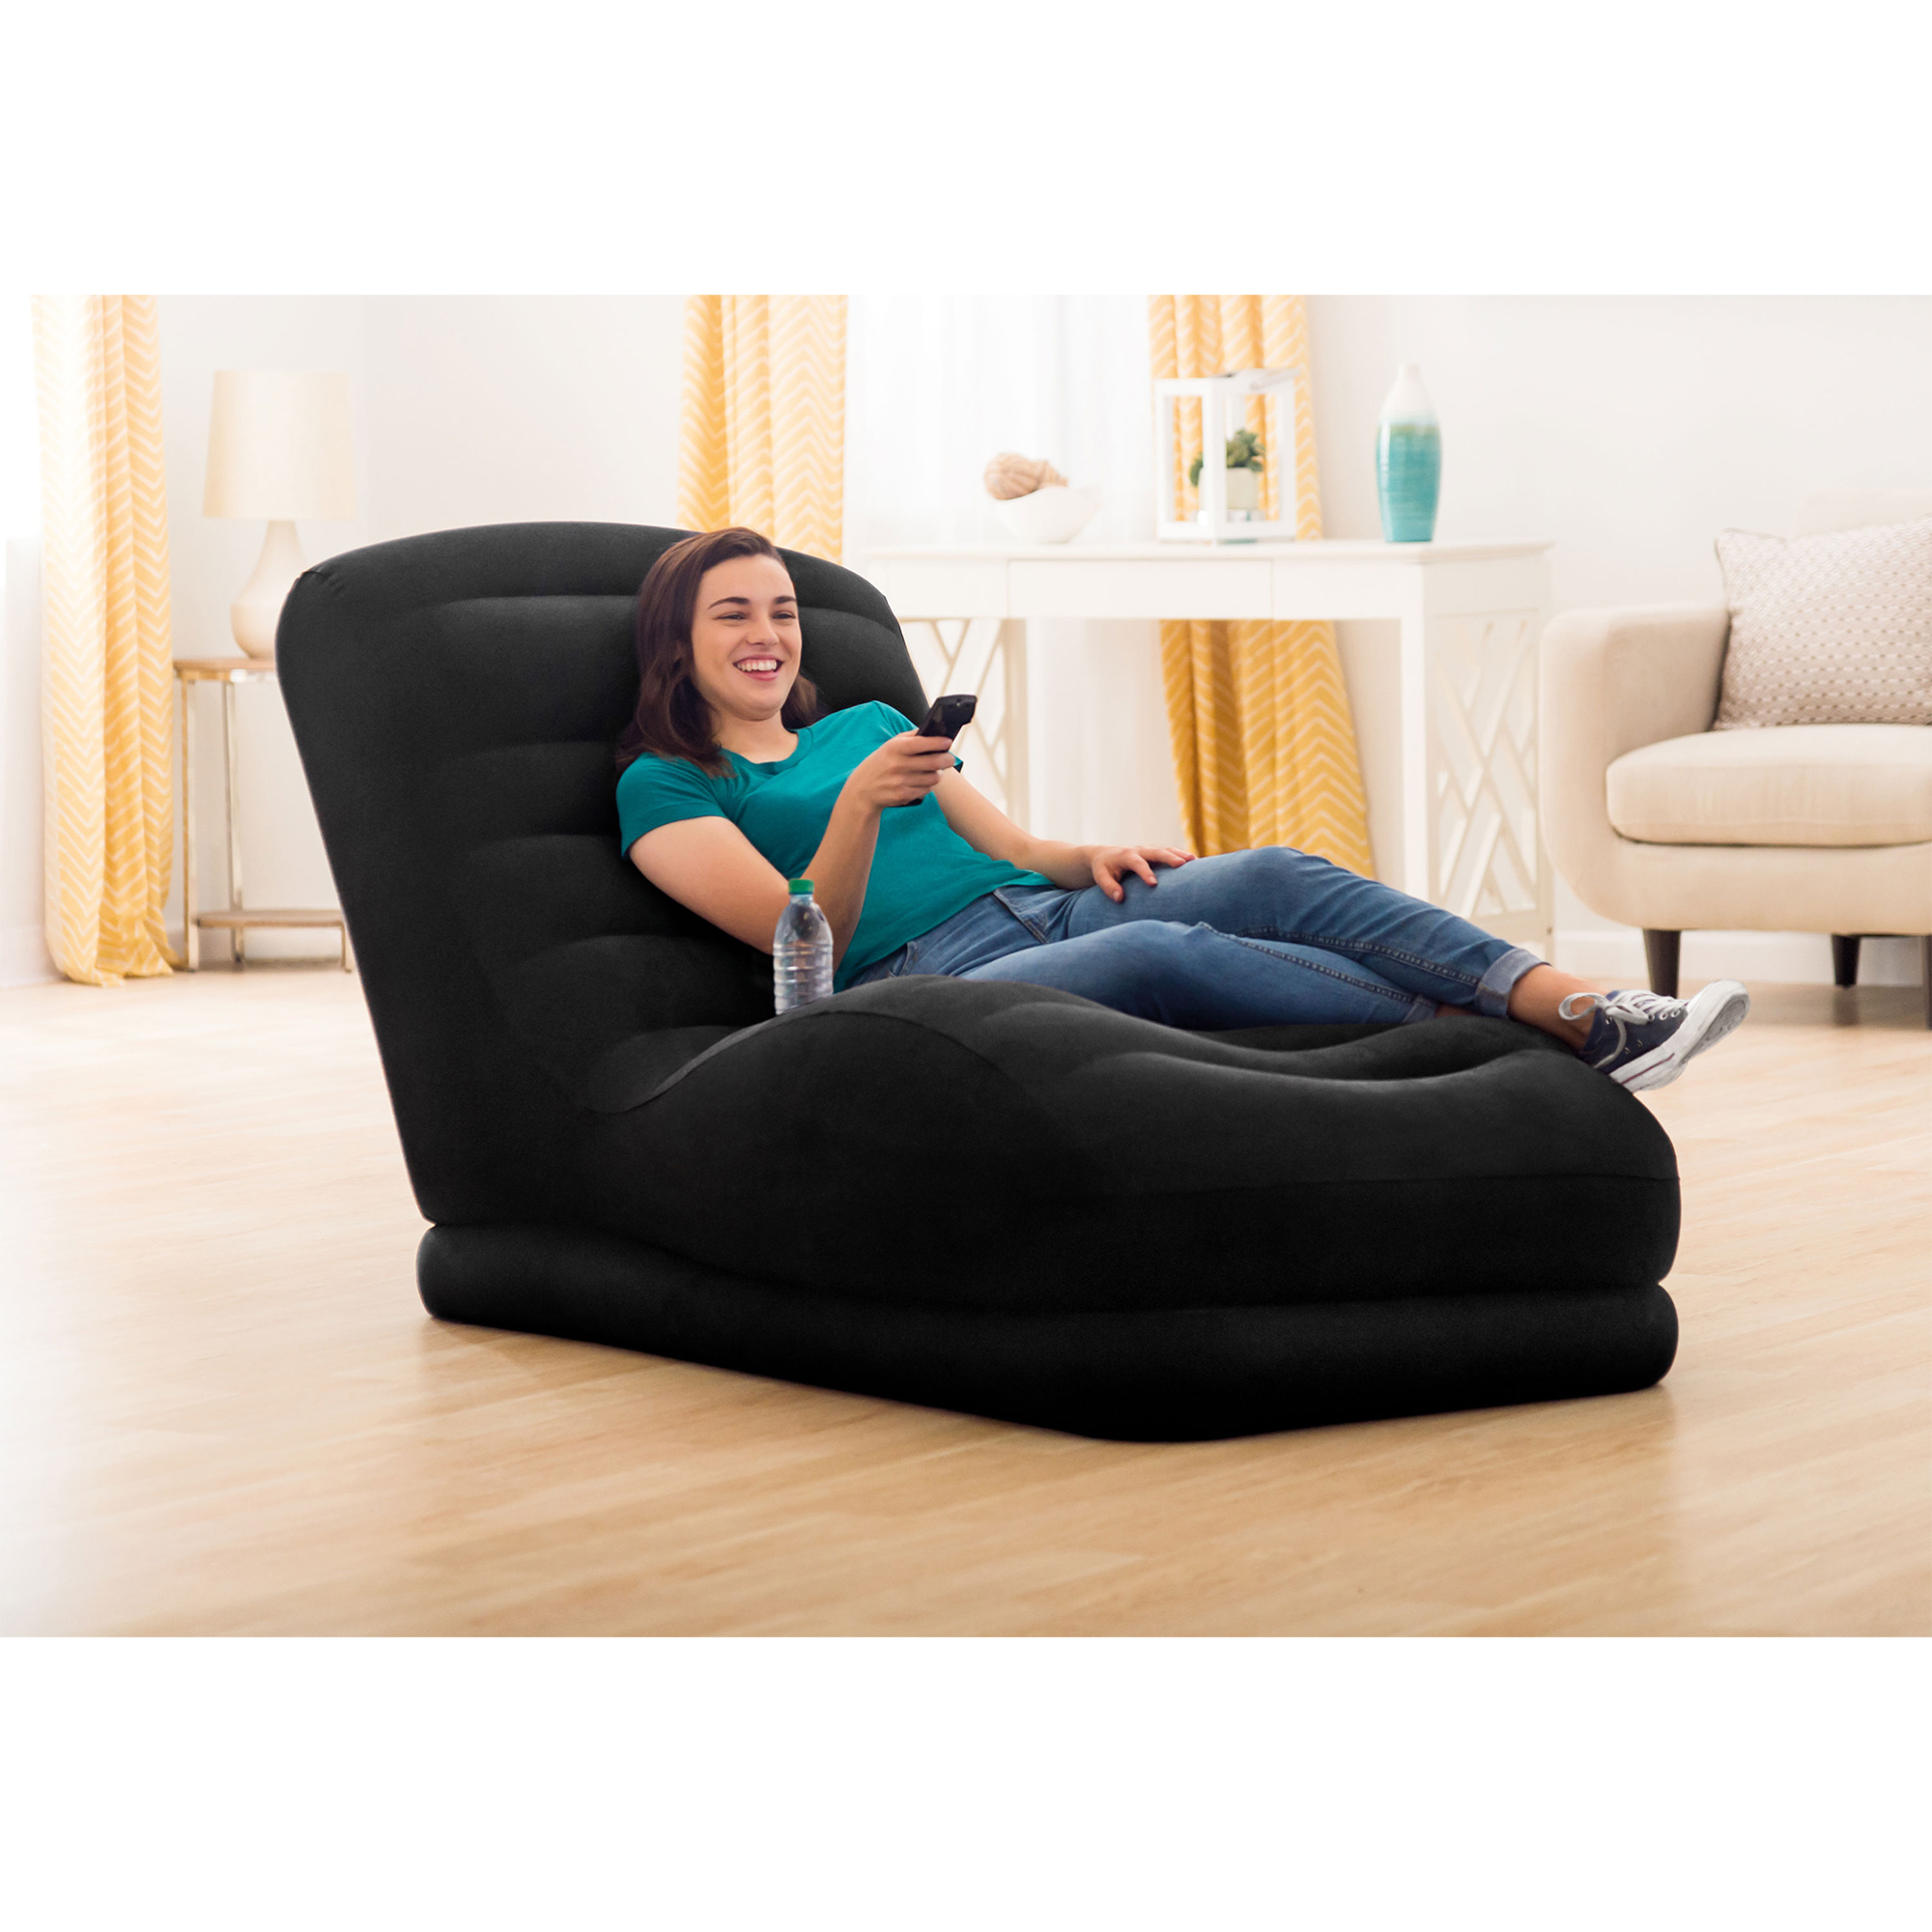 Intex Inflatable Contoured Mega Lounge Chair With Built In Cup Holder Black